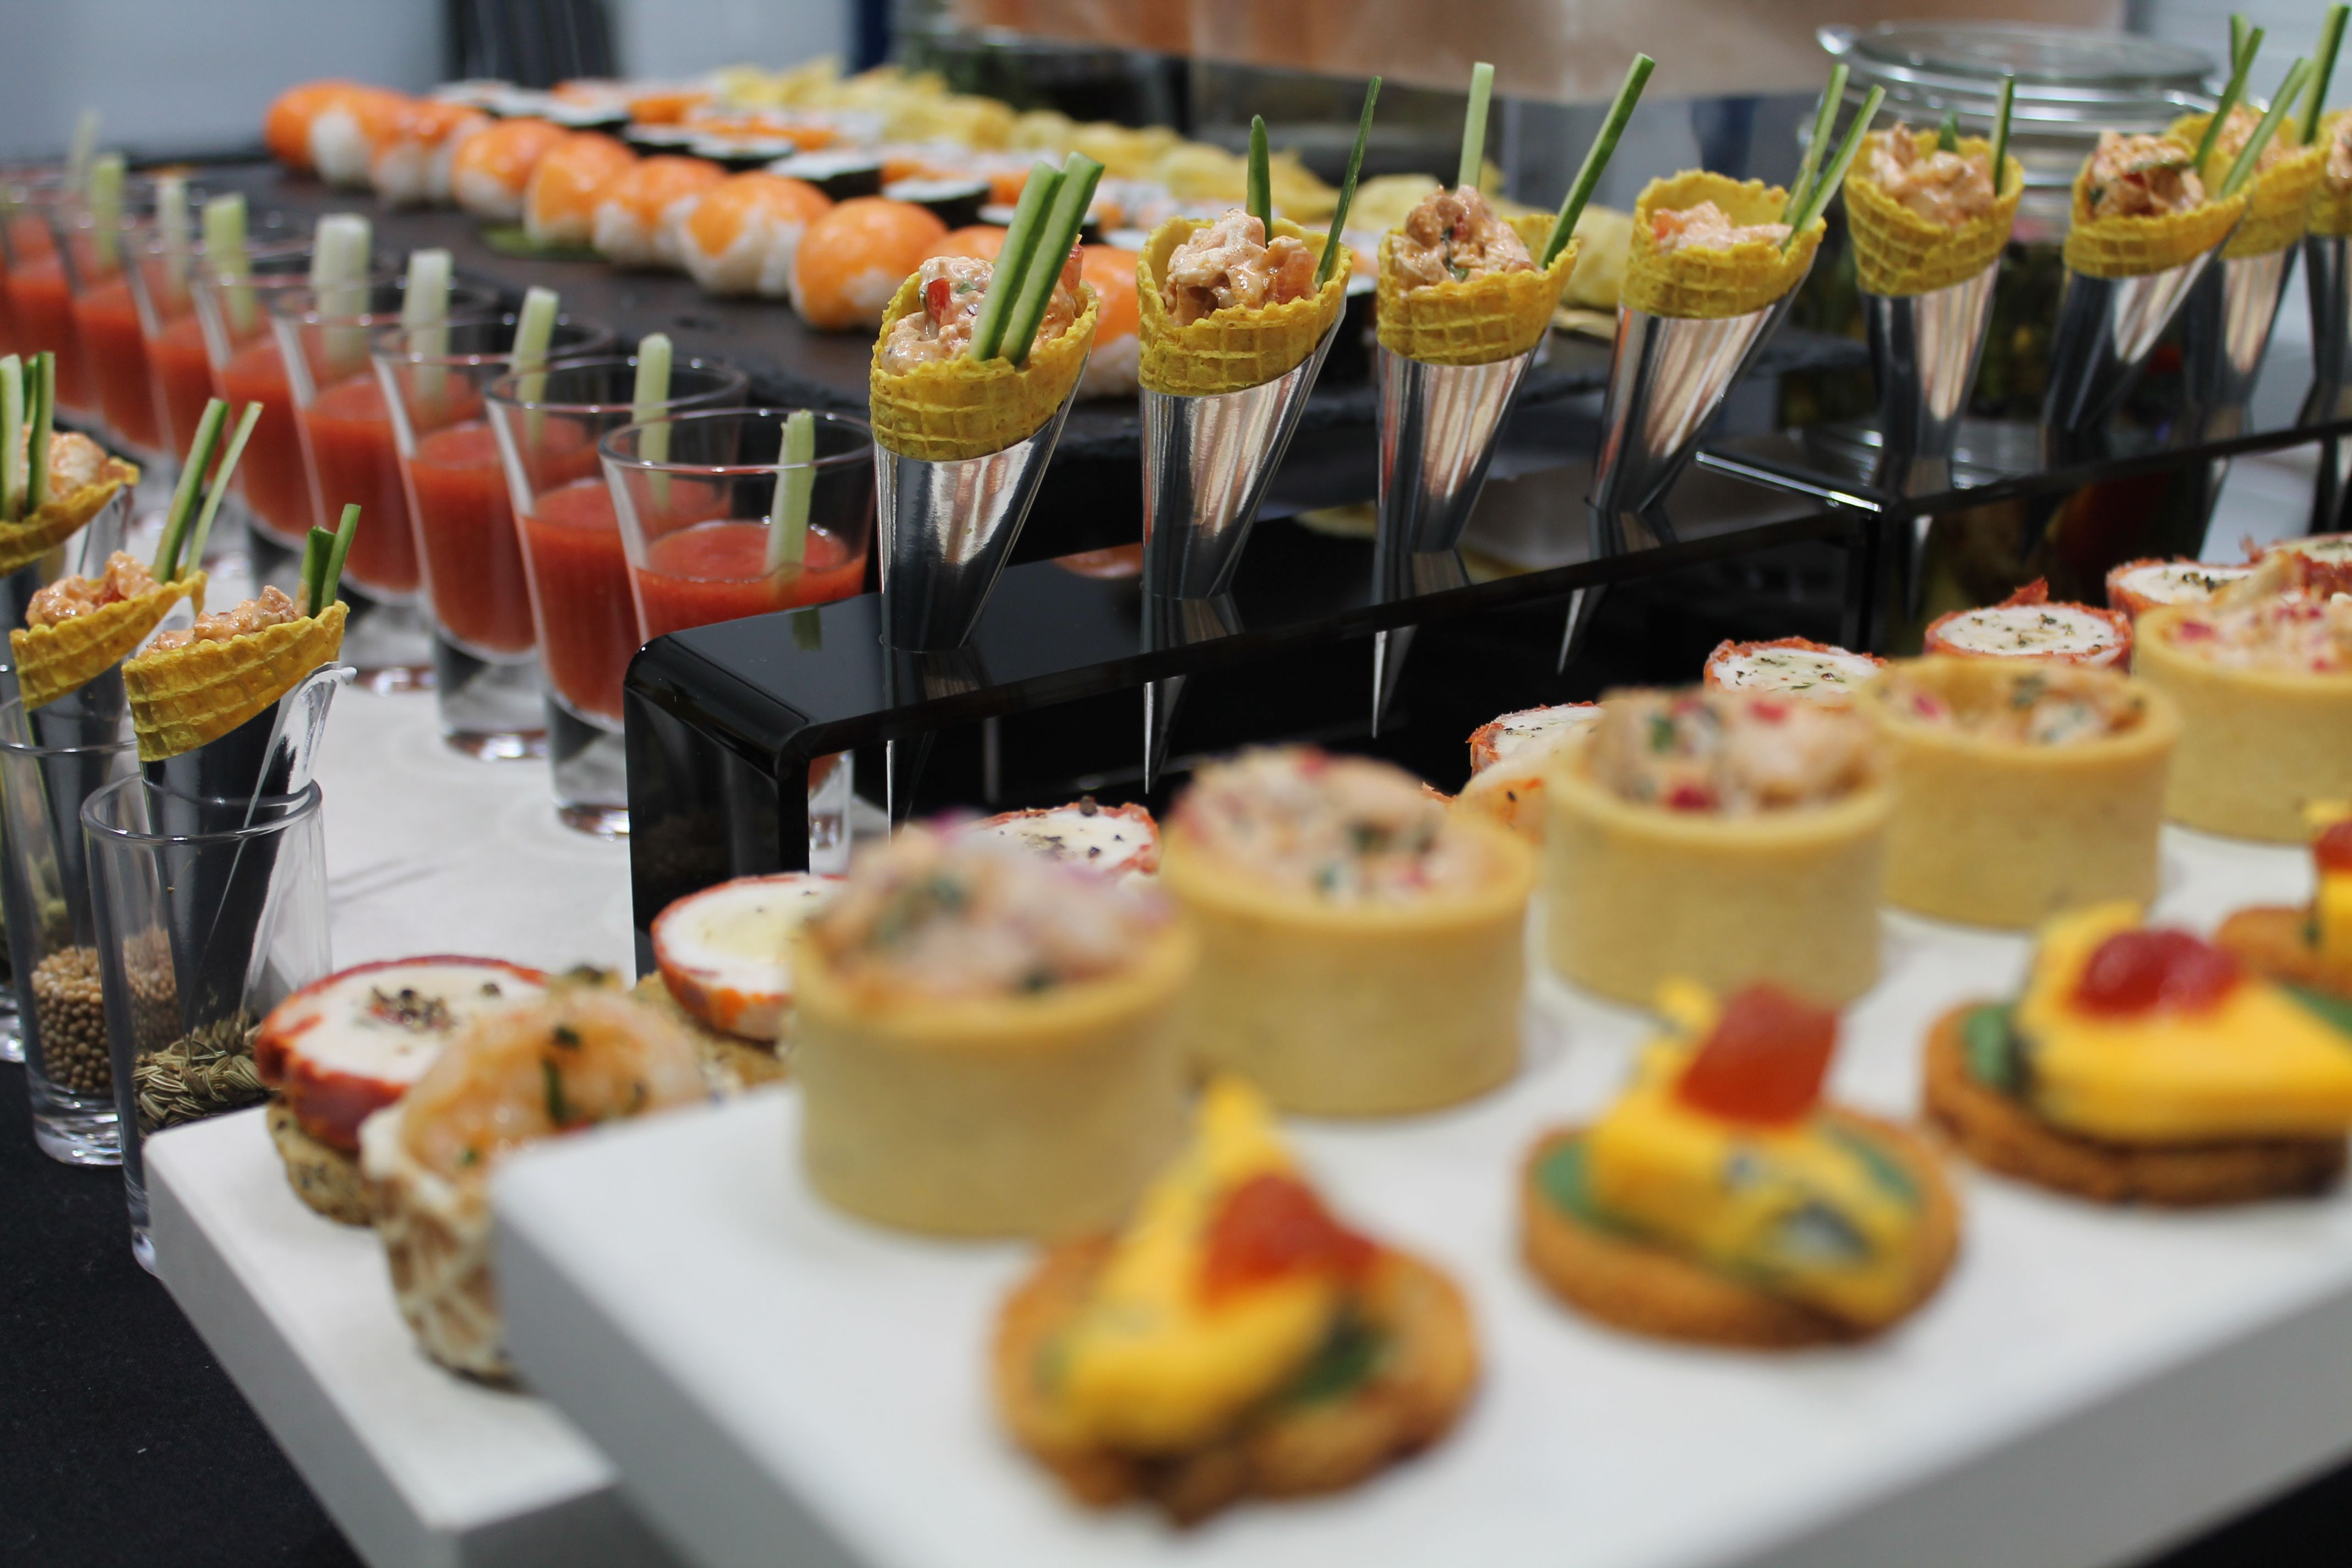 Canap s sushi and curry cones wirral gourmet food for Canape party ideas